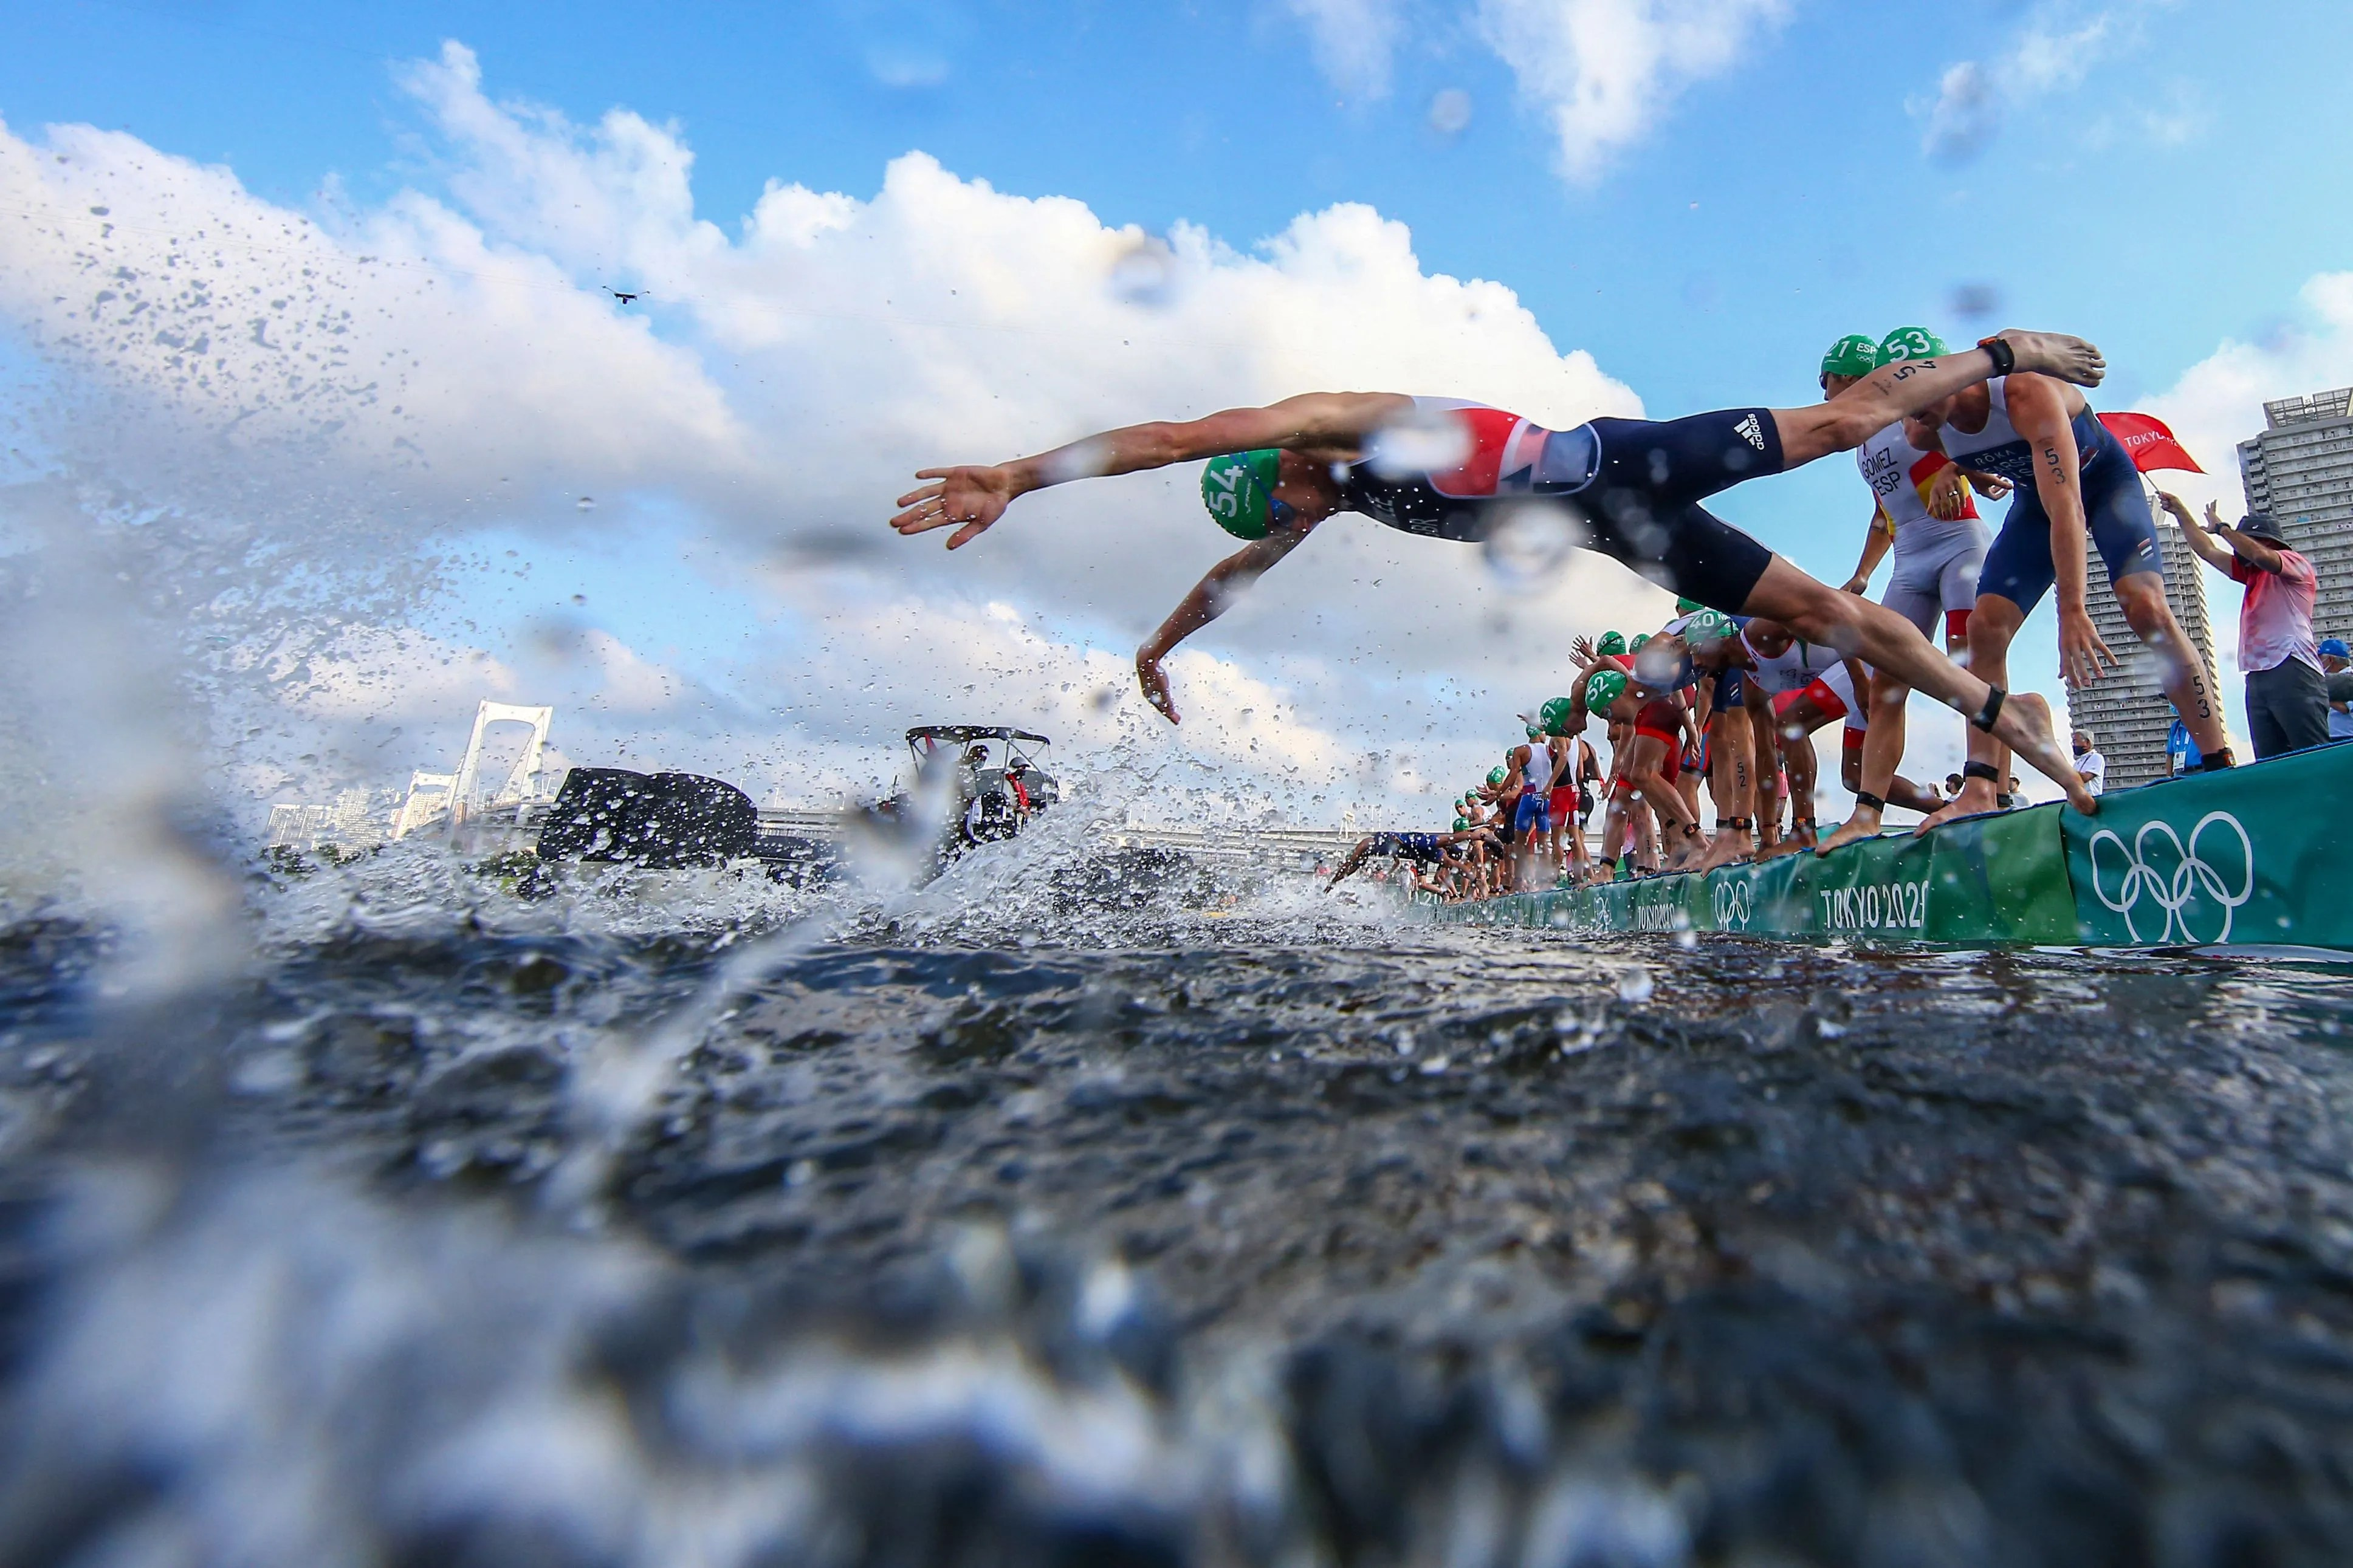 Some athletes dive into the water while others are stranded by a broadcast boat during the men's individual triathlon competition at the Tokyo 2020 Olympic Games.